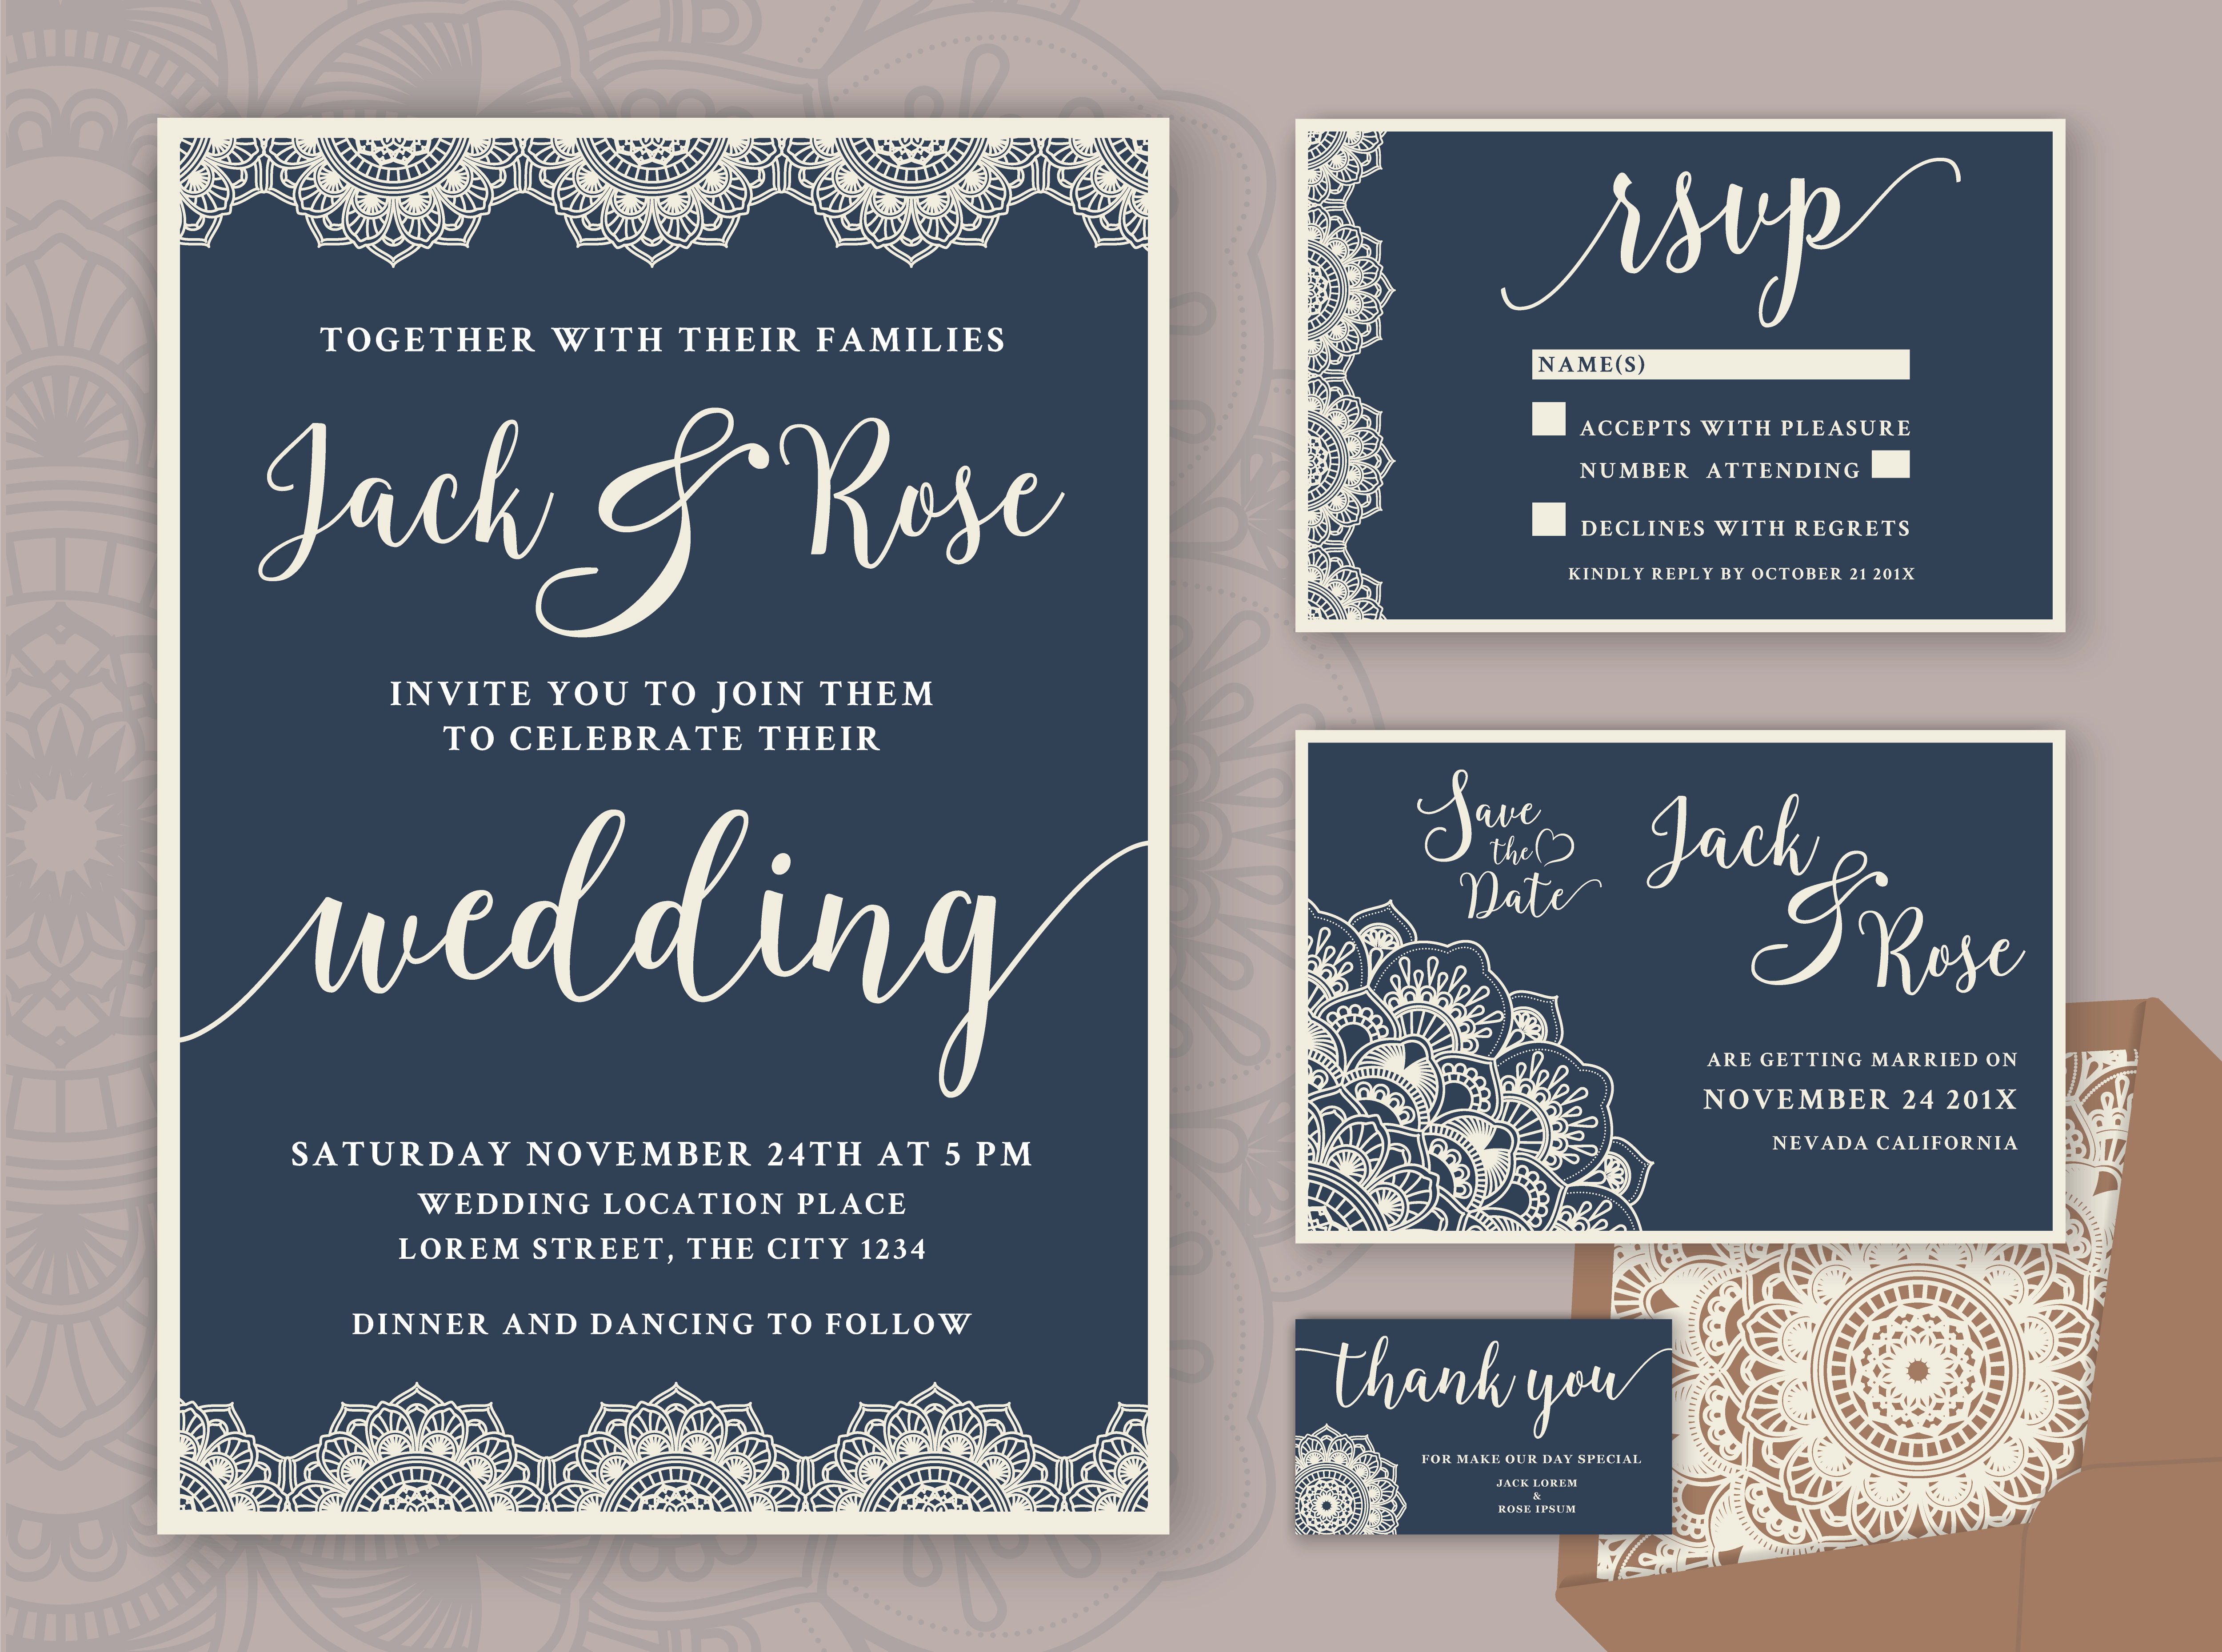 Rustic Wedding Invitation Design Template. Include RSVP